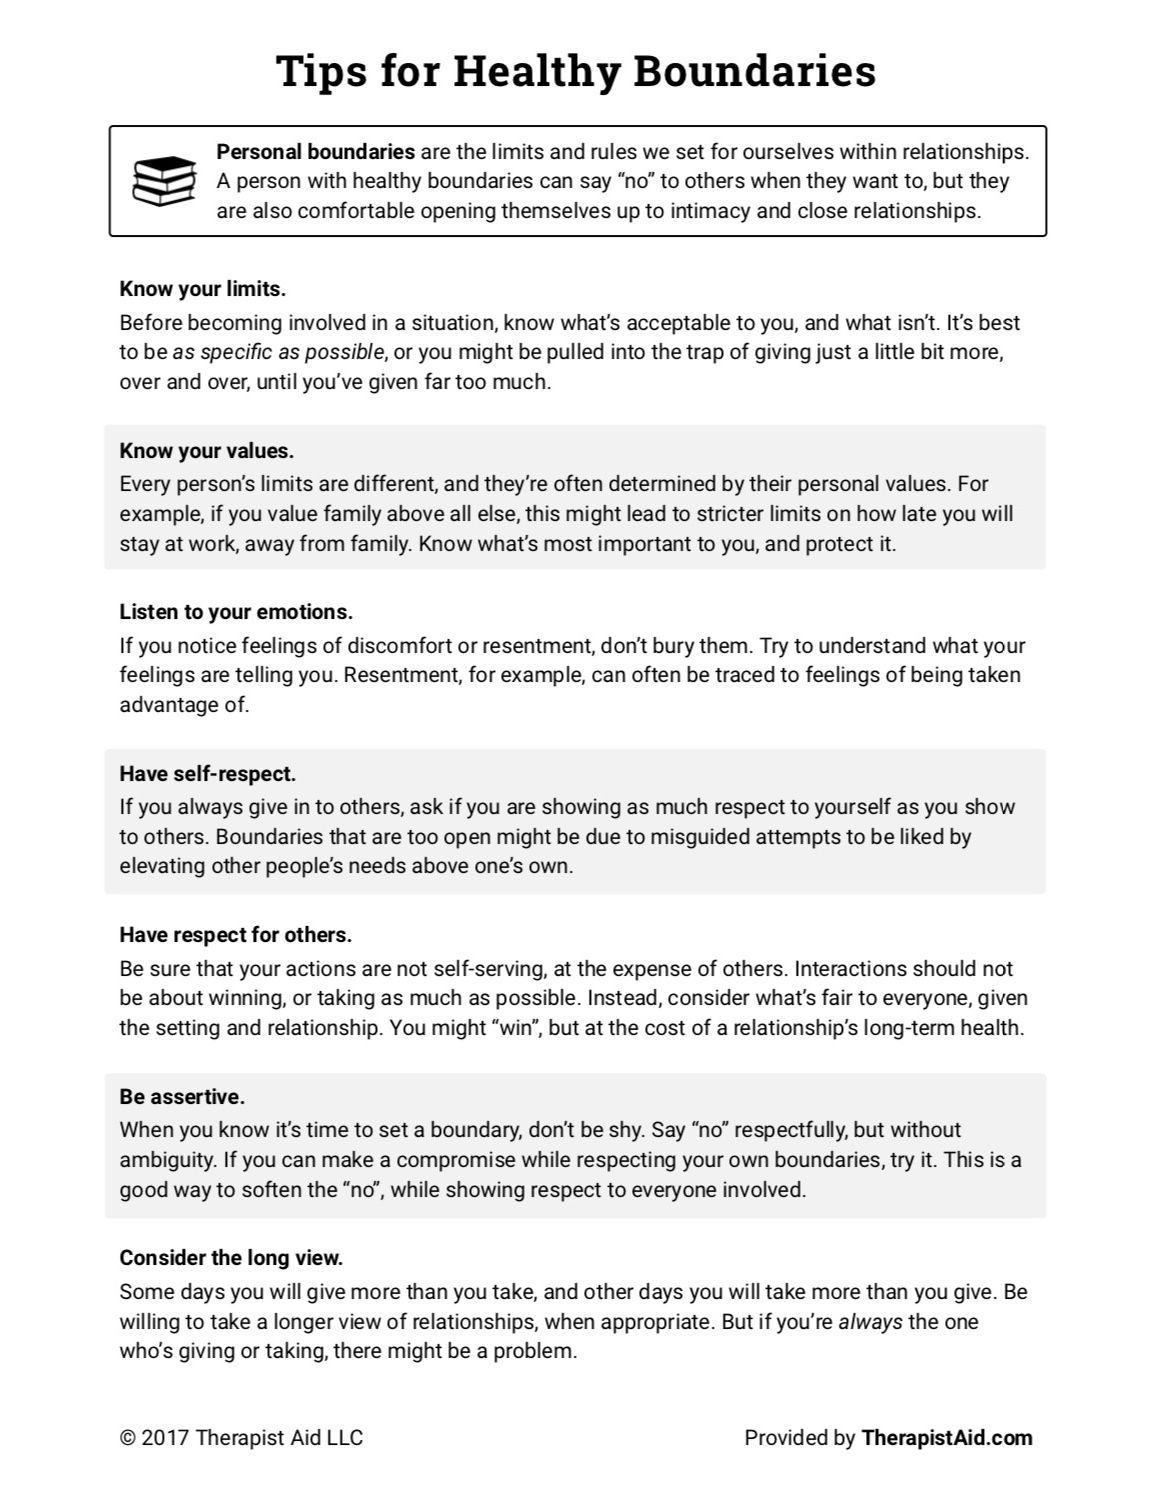 Healthy Boundaries Tips Worksheet Self Help Therapy